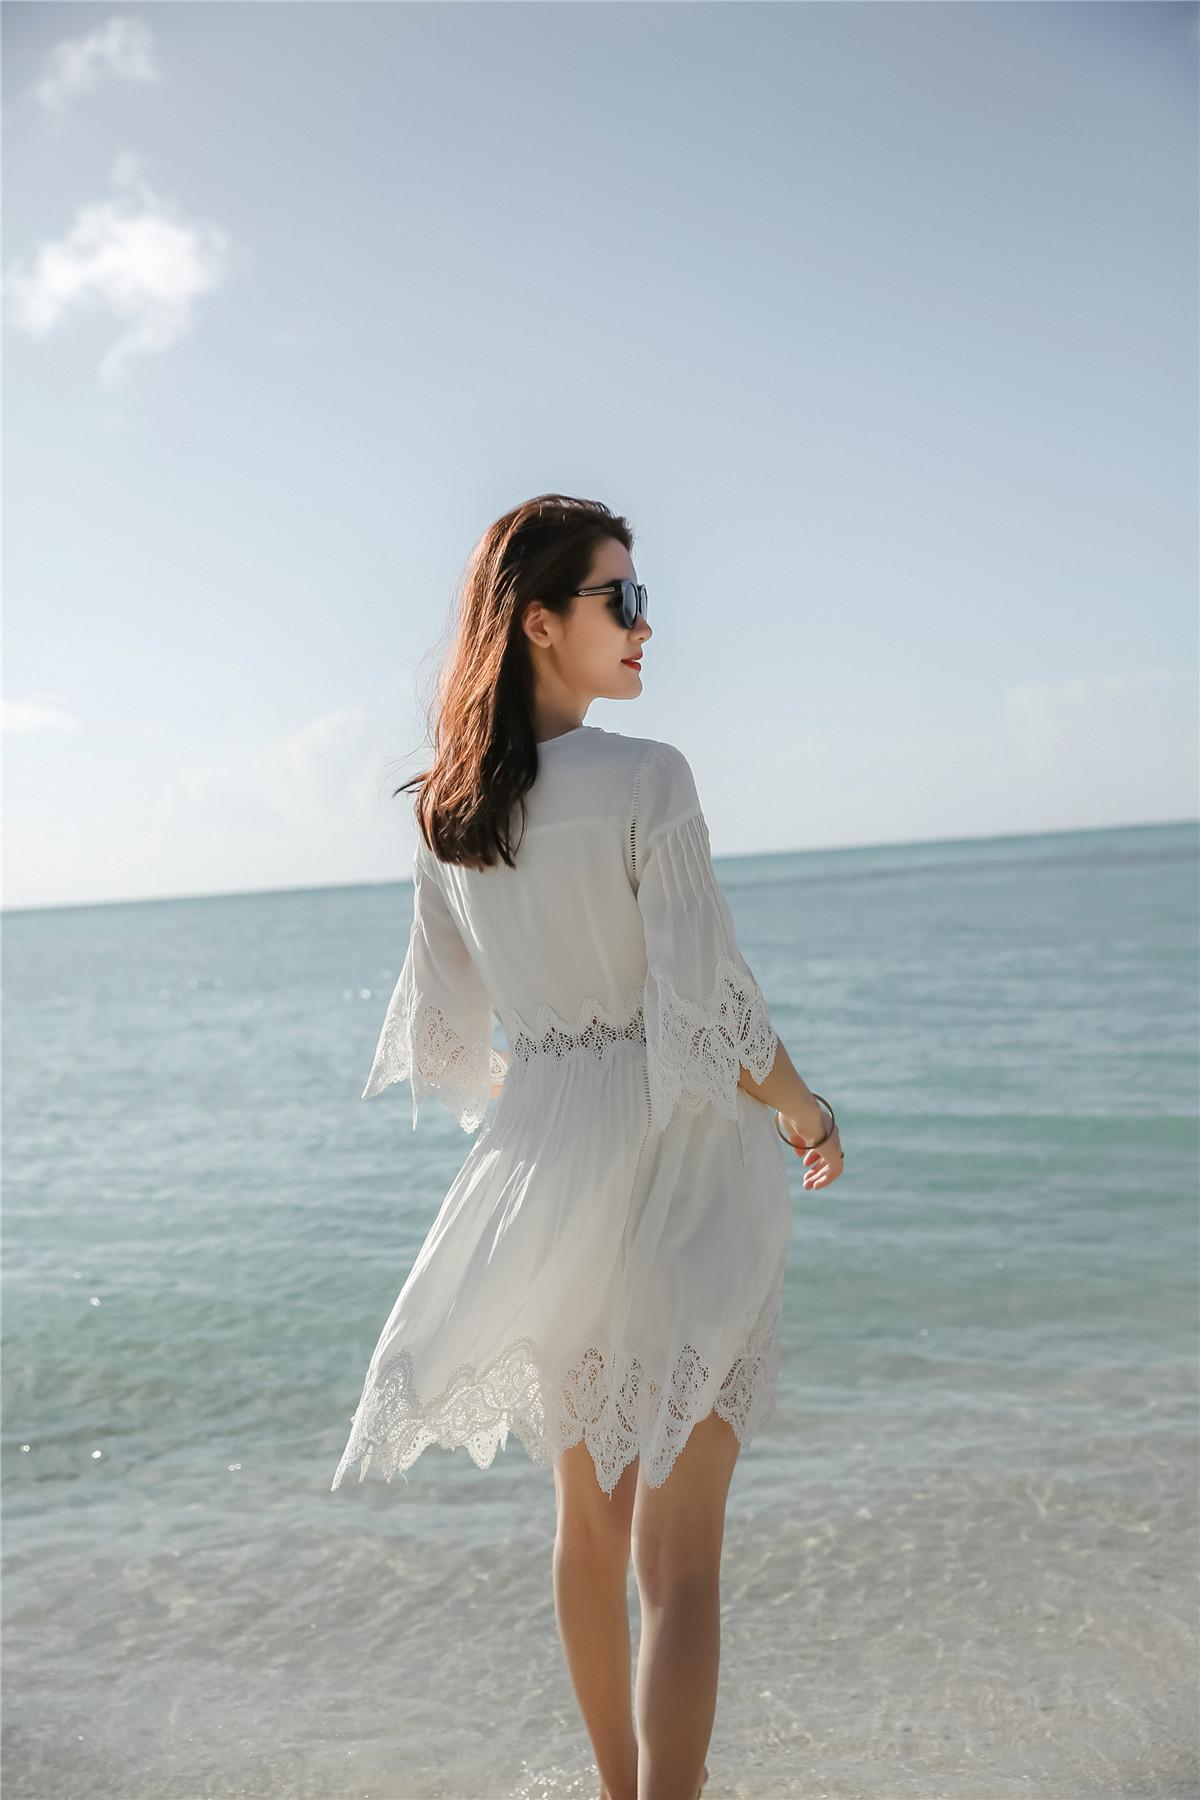 New Summer Casual Lace White Dresses Embroidery V-neck Flare Sleeve Hollow Out Fairy Beach Dress Holiday